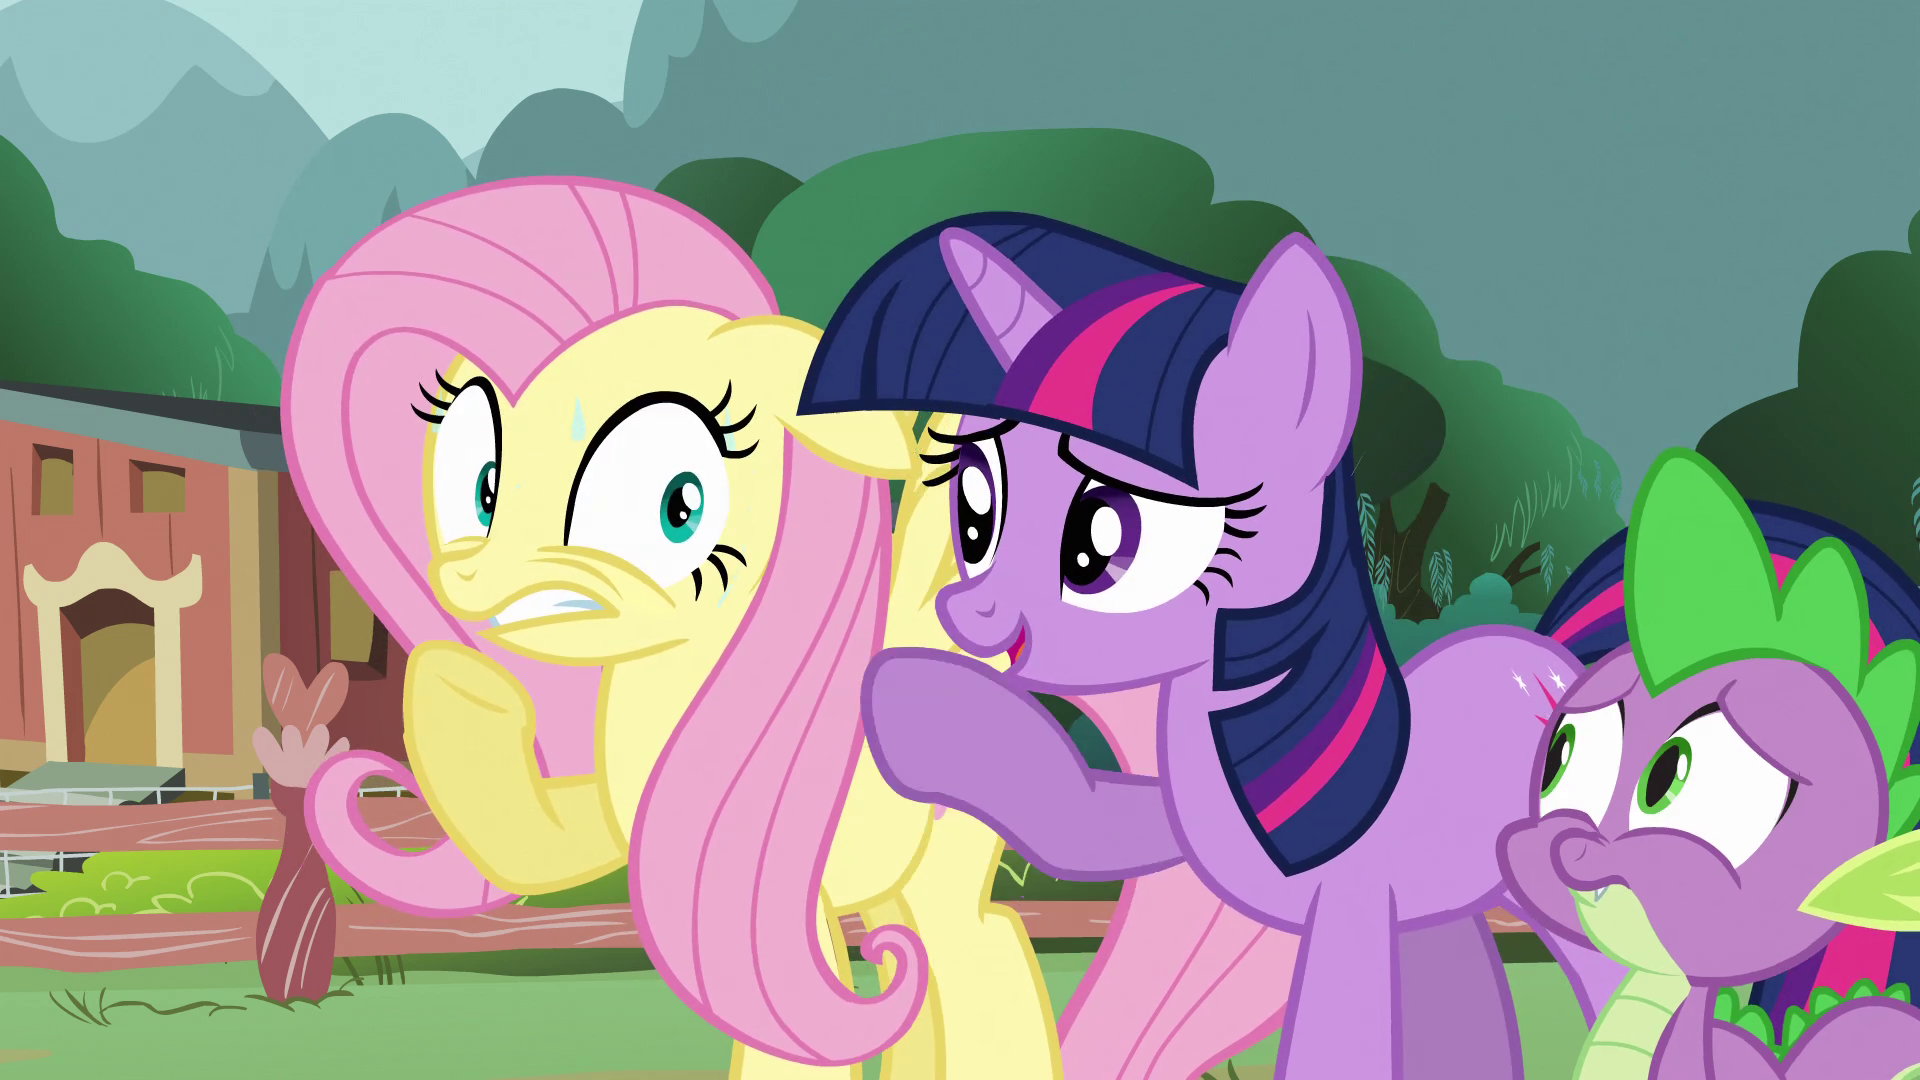 Fluttershy worries for her woodland frie